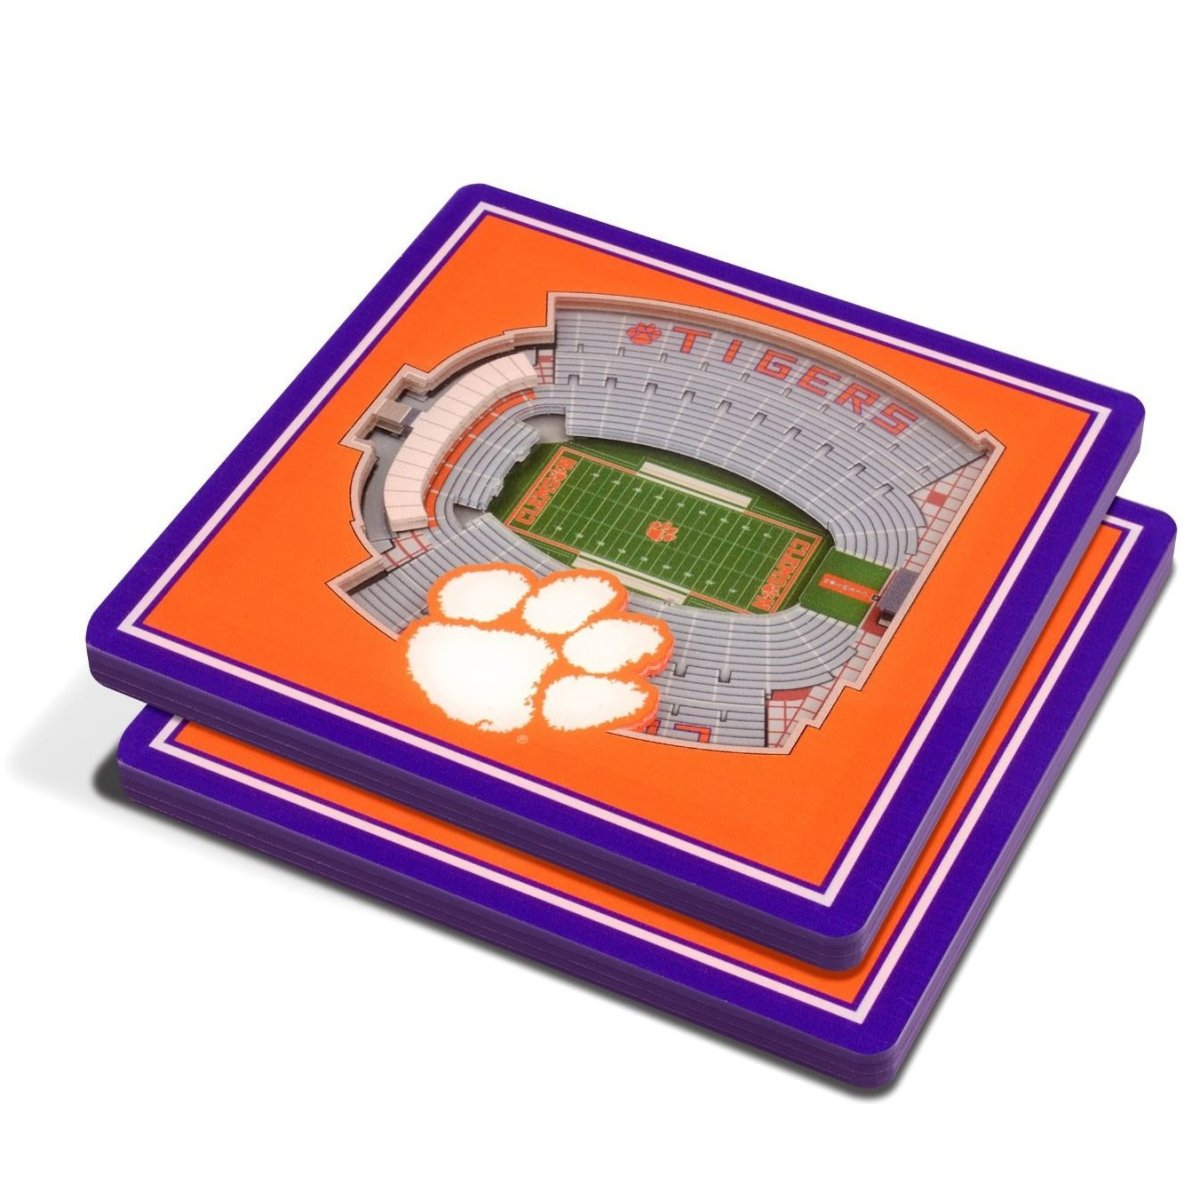 Clemson Tigers 3D Stadium Views Coaster Set - Mr. Knickerbocker